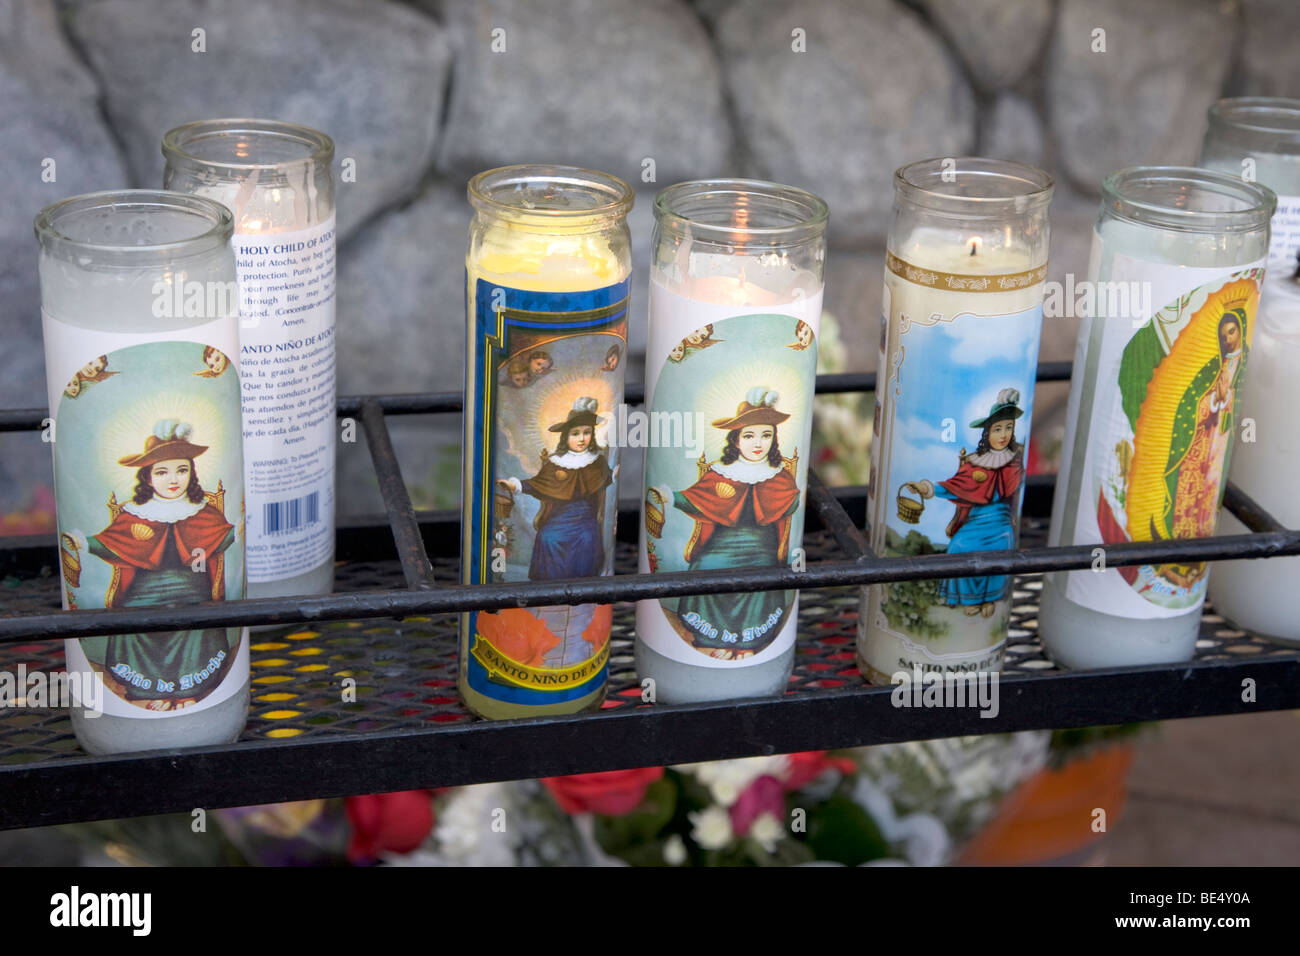 Candle Holders With Depiction Of The Holy Child Of Atocha For Protection Los Angeles - Stock Image